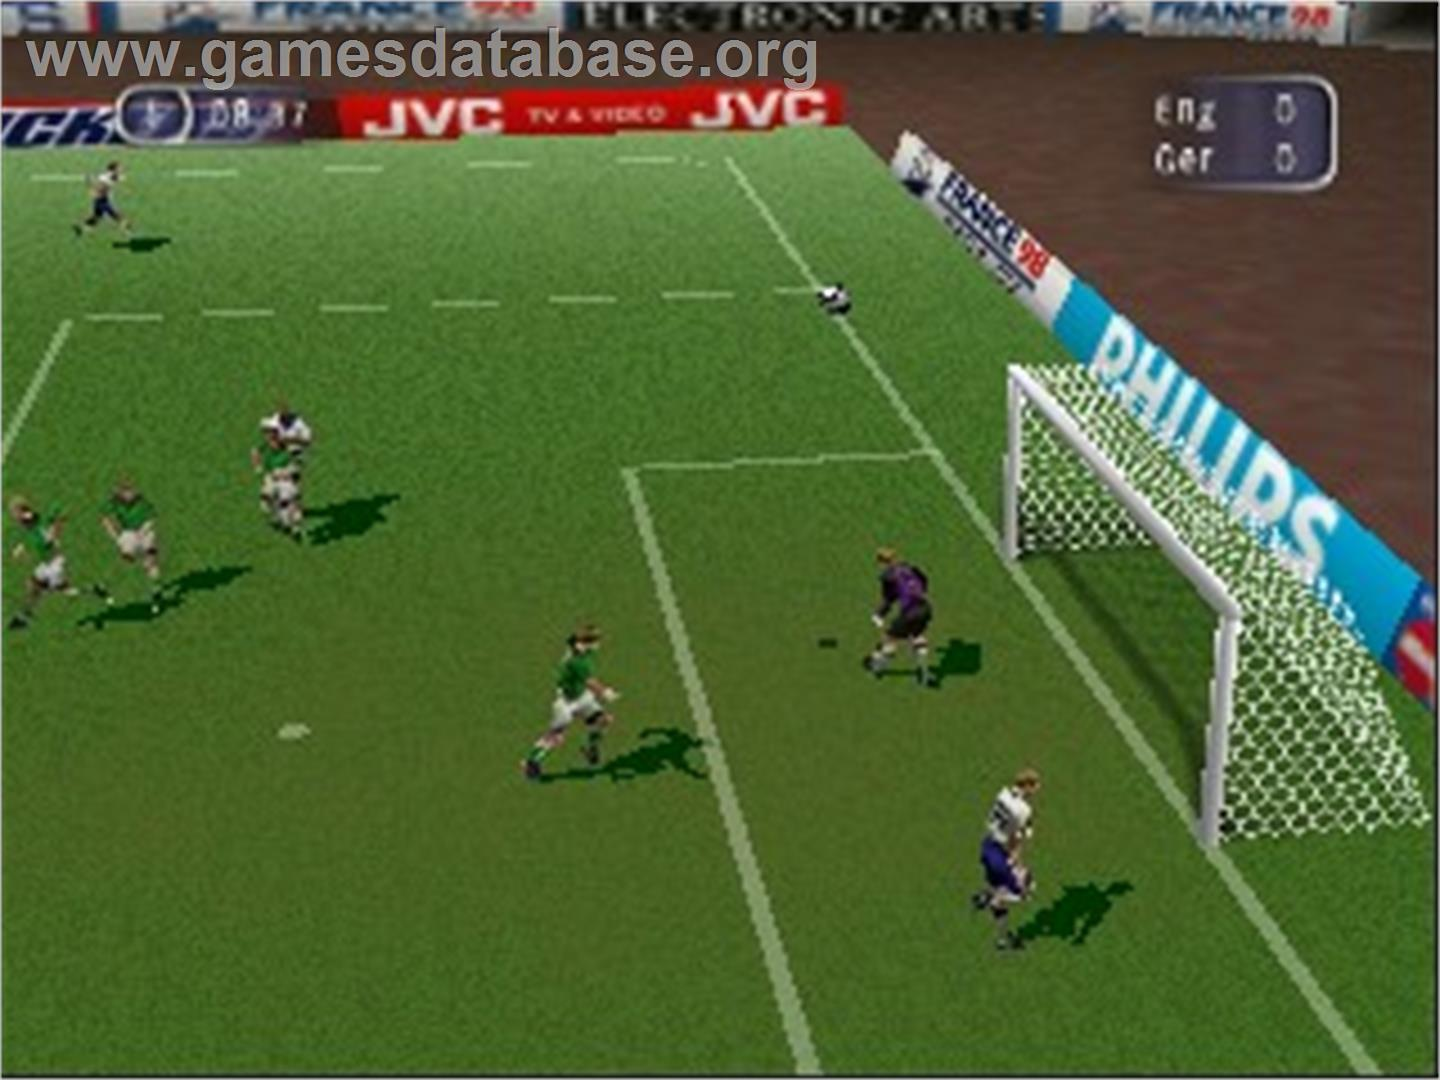 FIFA 98: Road to World Cup - Nintendo N64 - Artwork - In Game